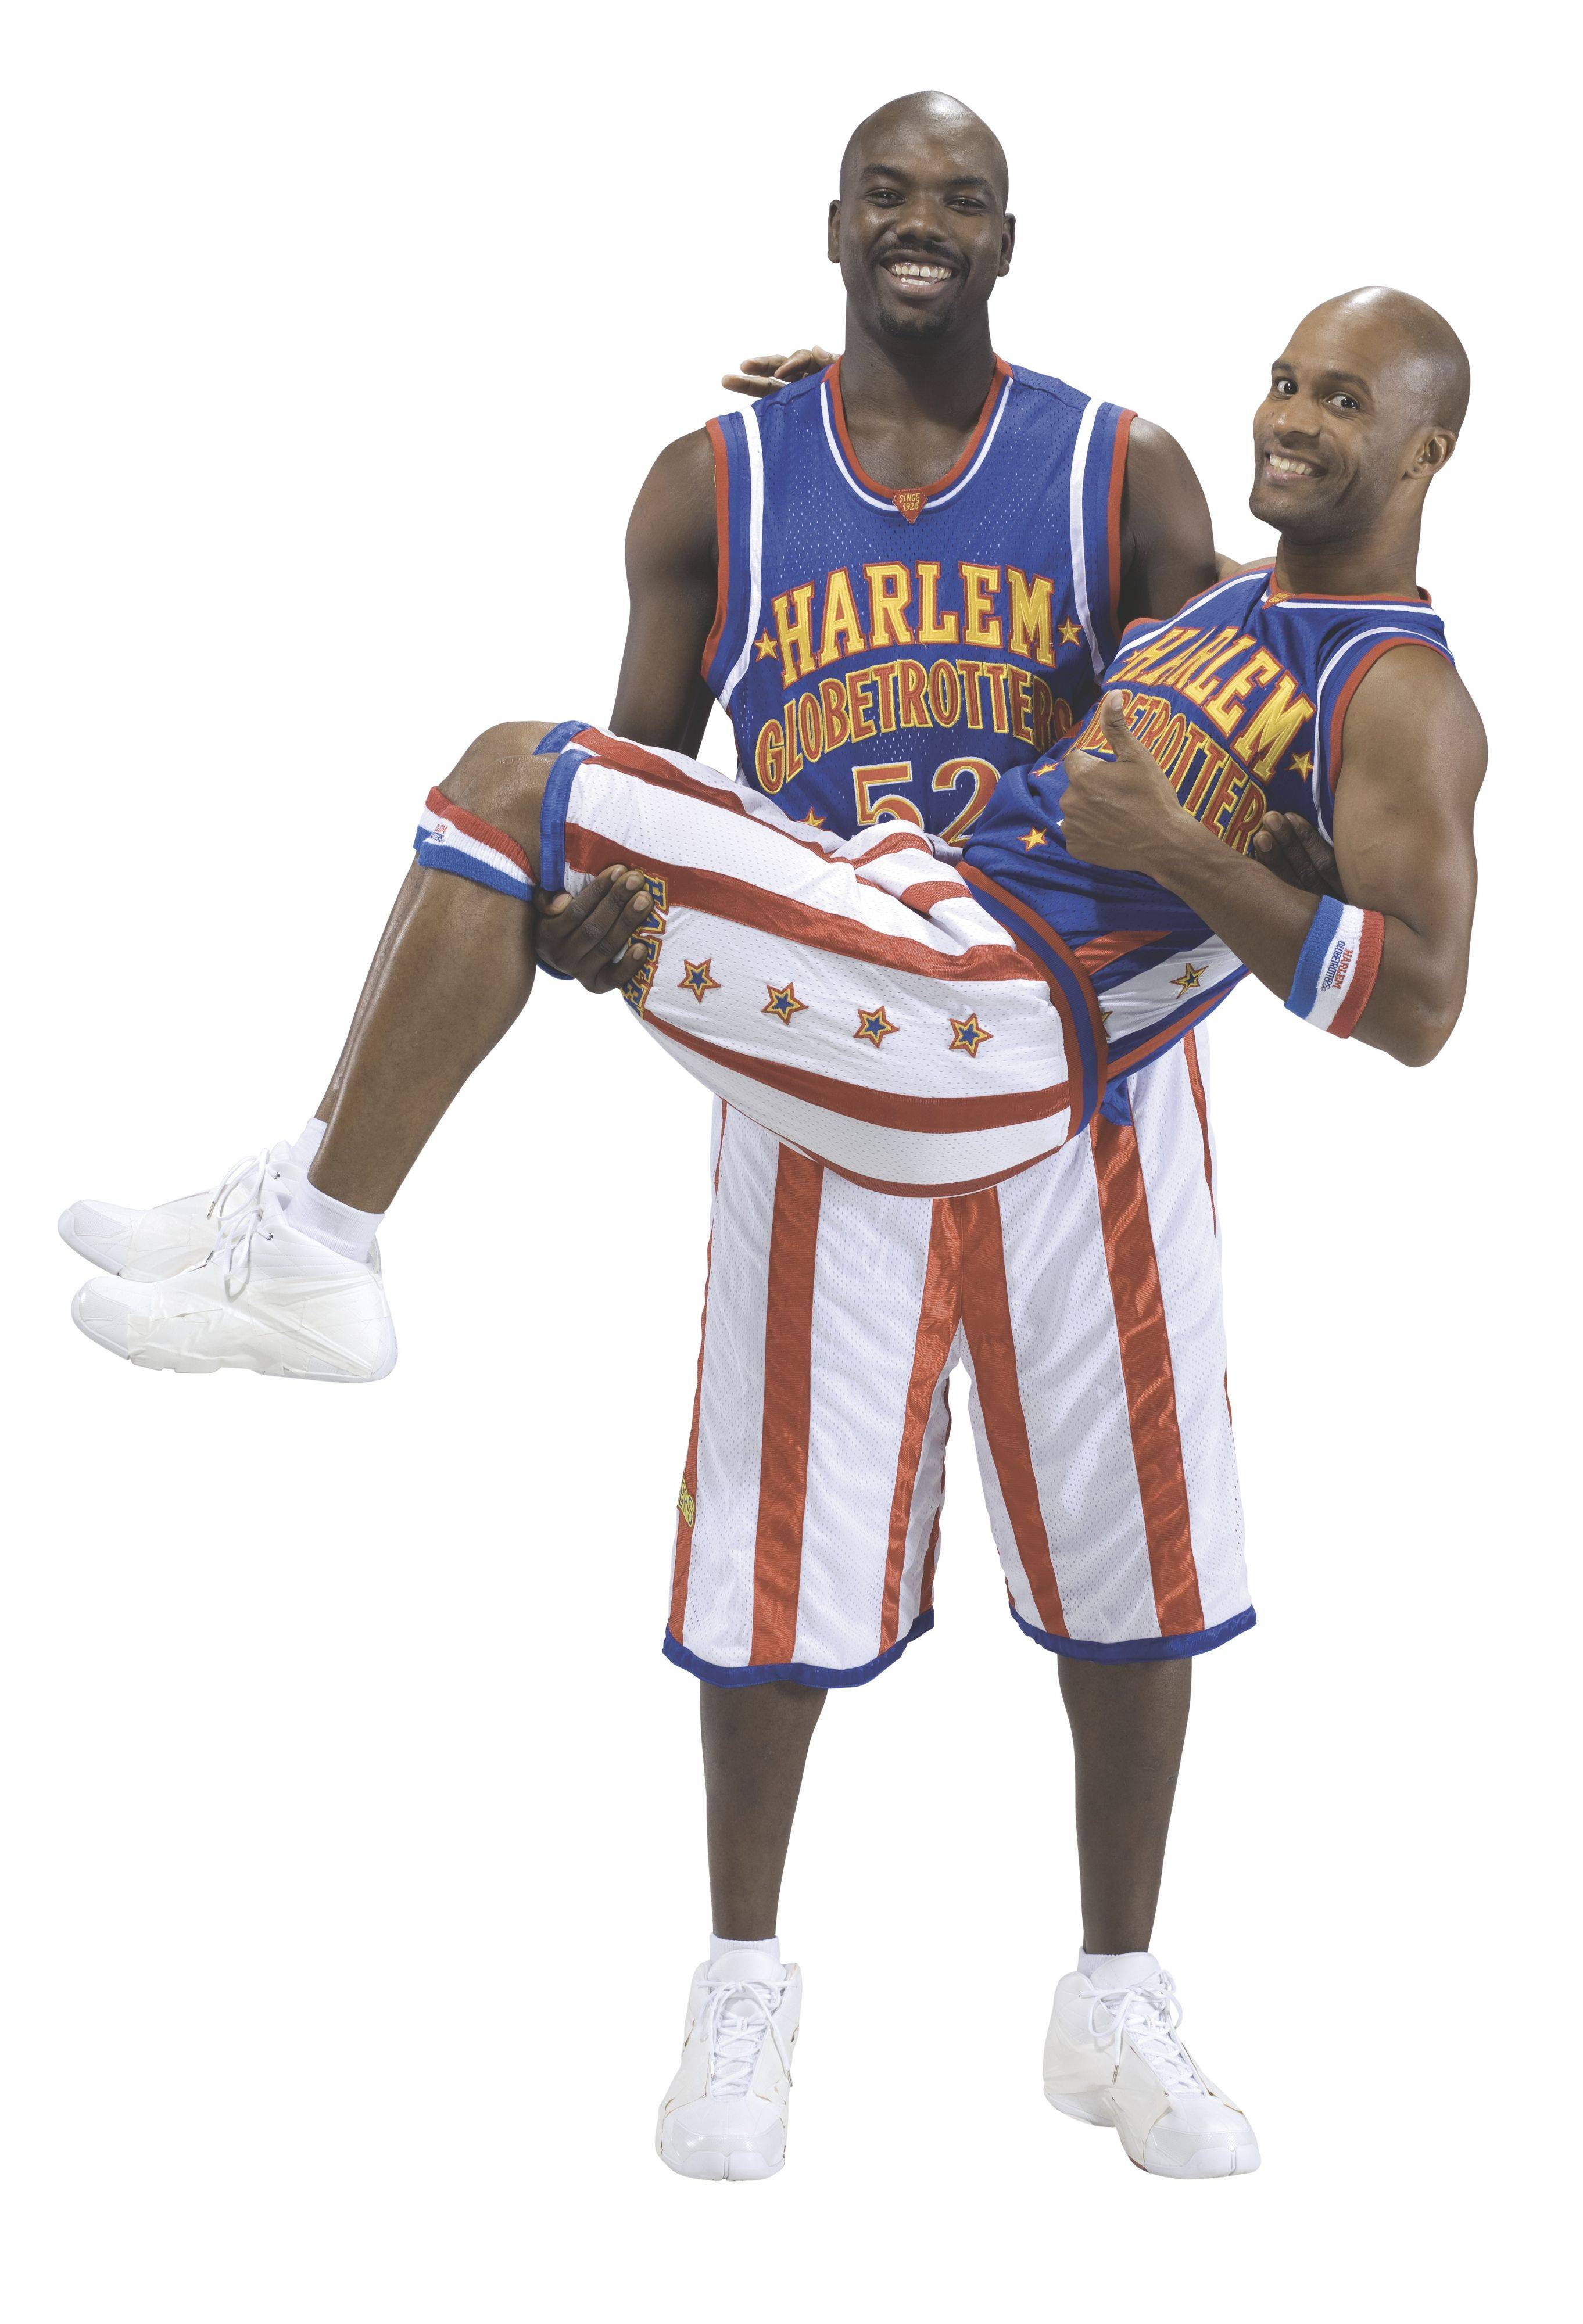 Big Easy Lofton and Flight Time Lang are just a couple of characters with the Harlem Globetrotters. They play at the Allstate Arena in Rosemont.